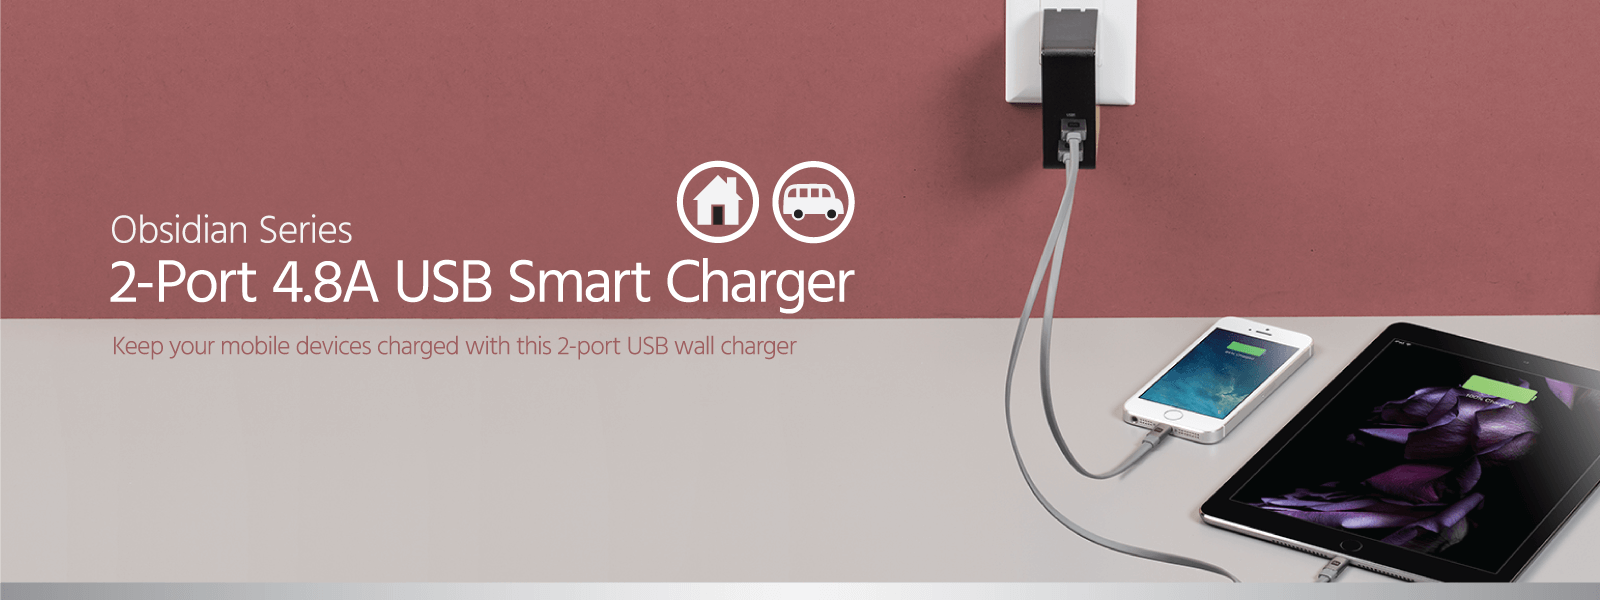 2-Port 4.8A USB Smart Charger